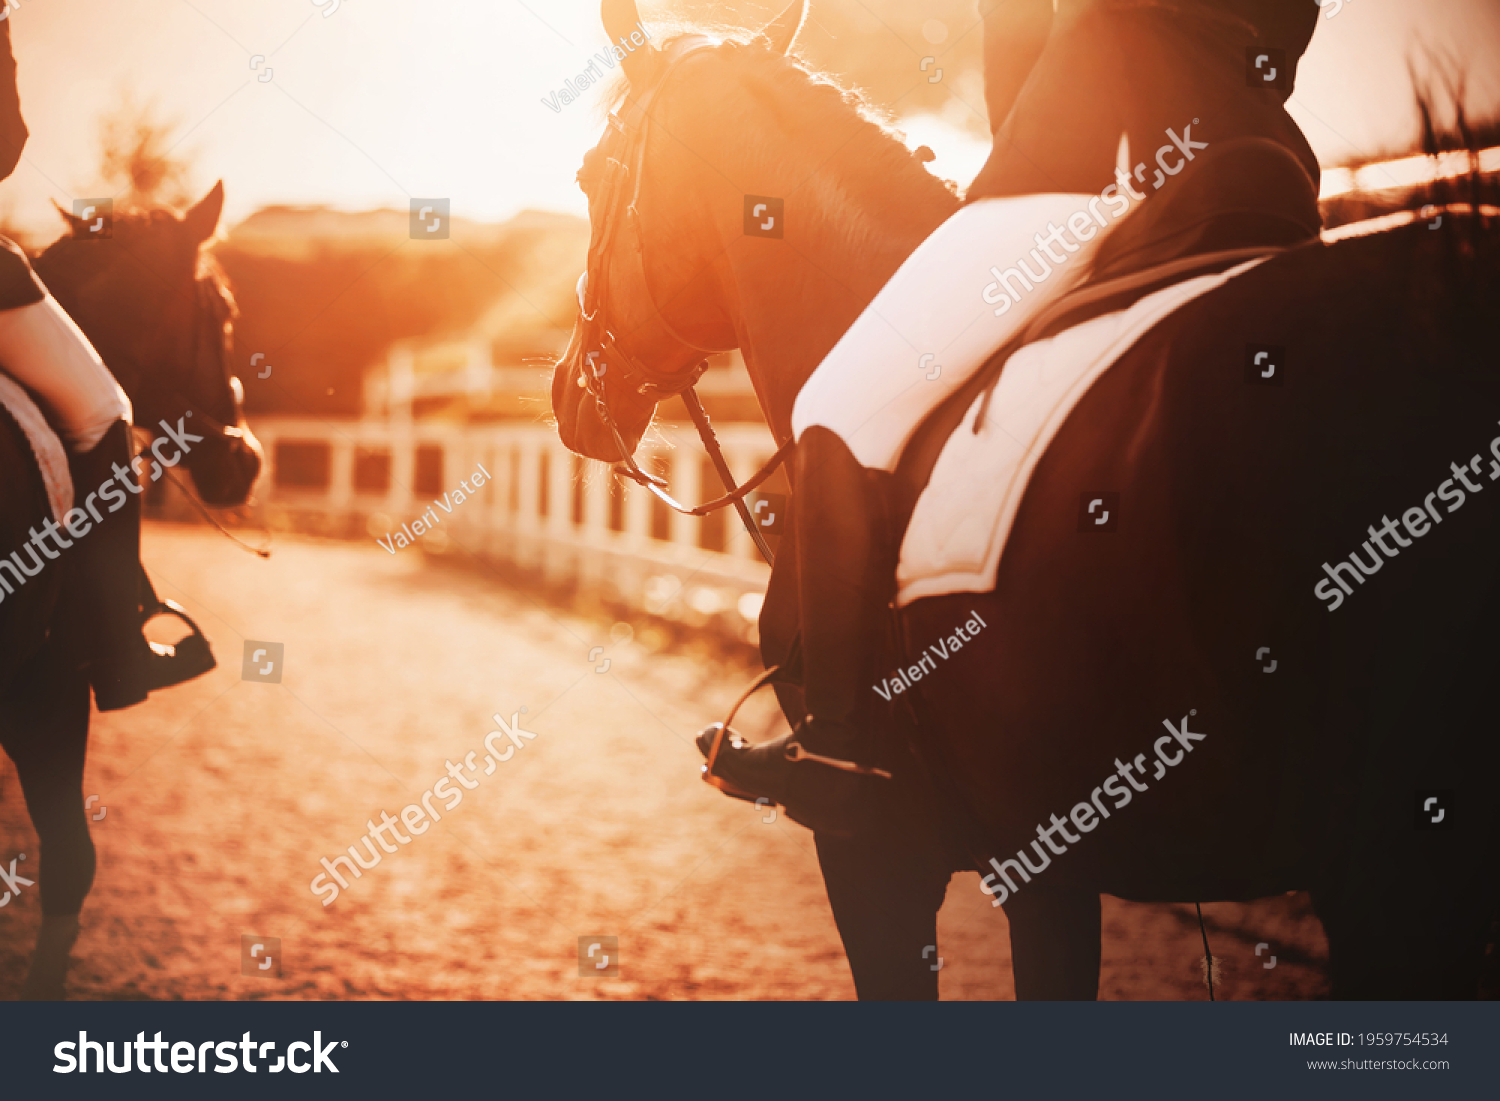 Two bay horses with riders in their saddles walk around the farm during the sunset, illuminated by the rays of the sun. Horse riding. #1959754534